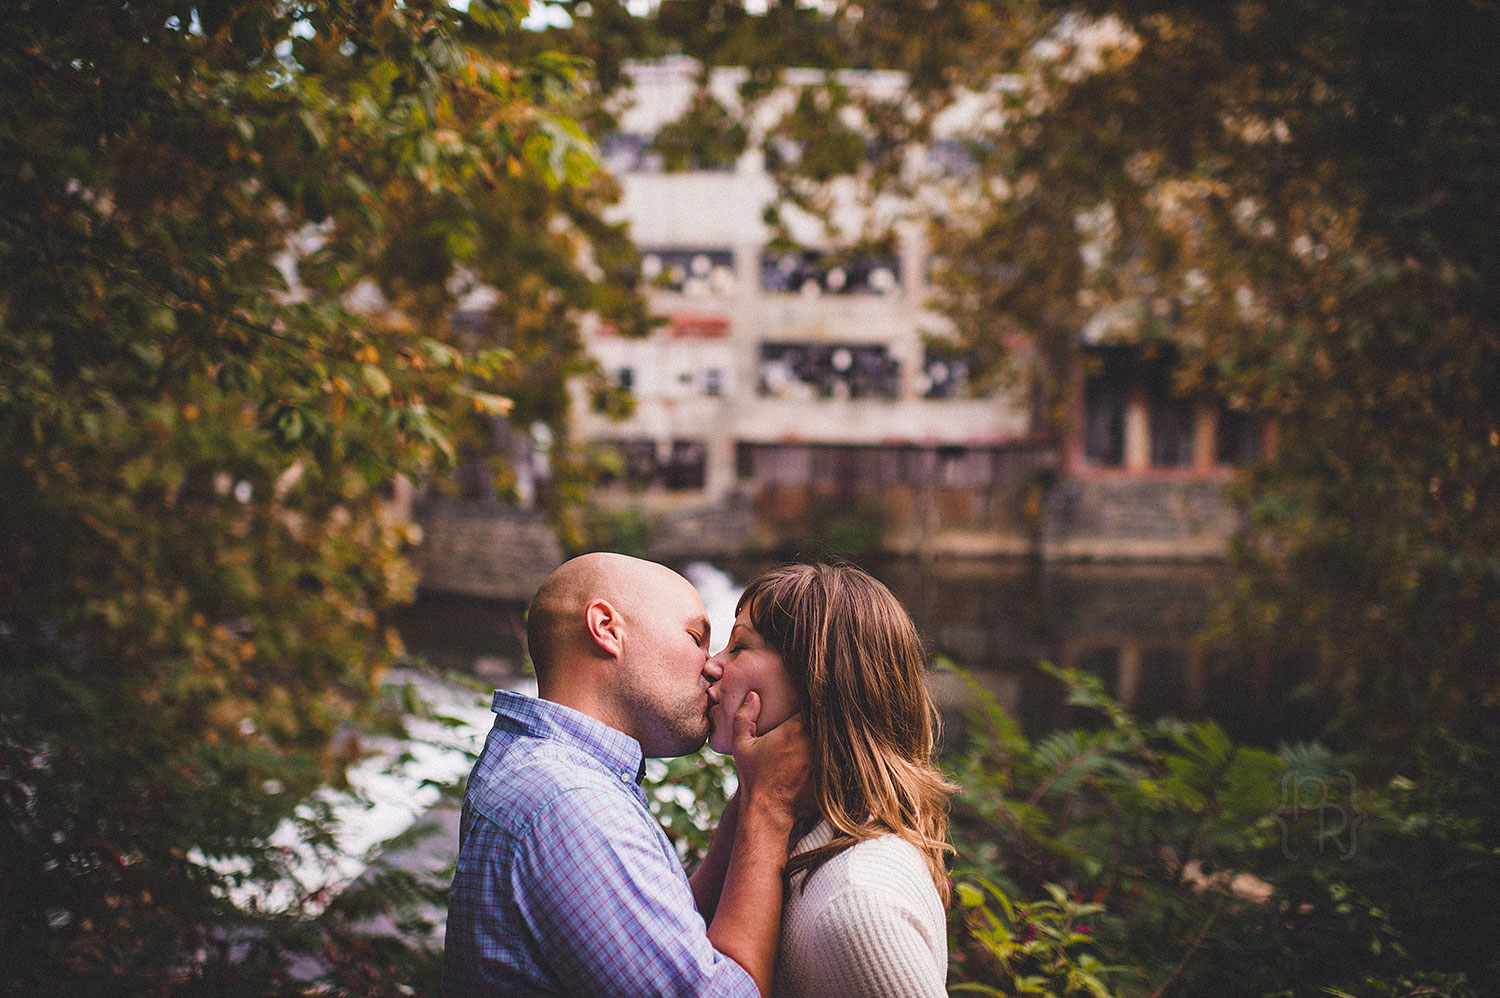 pat-robinson-photography-wilmington-engagement-session-18-2.jpg